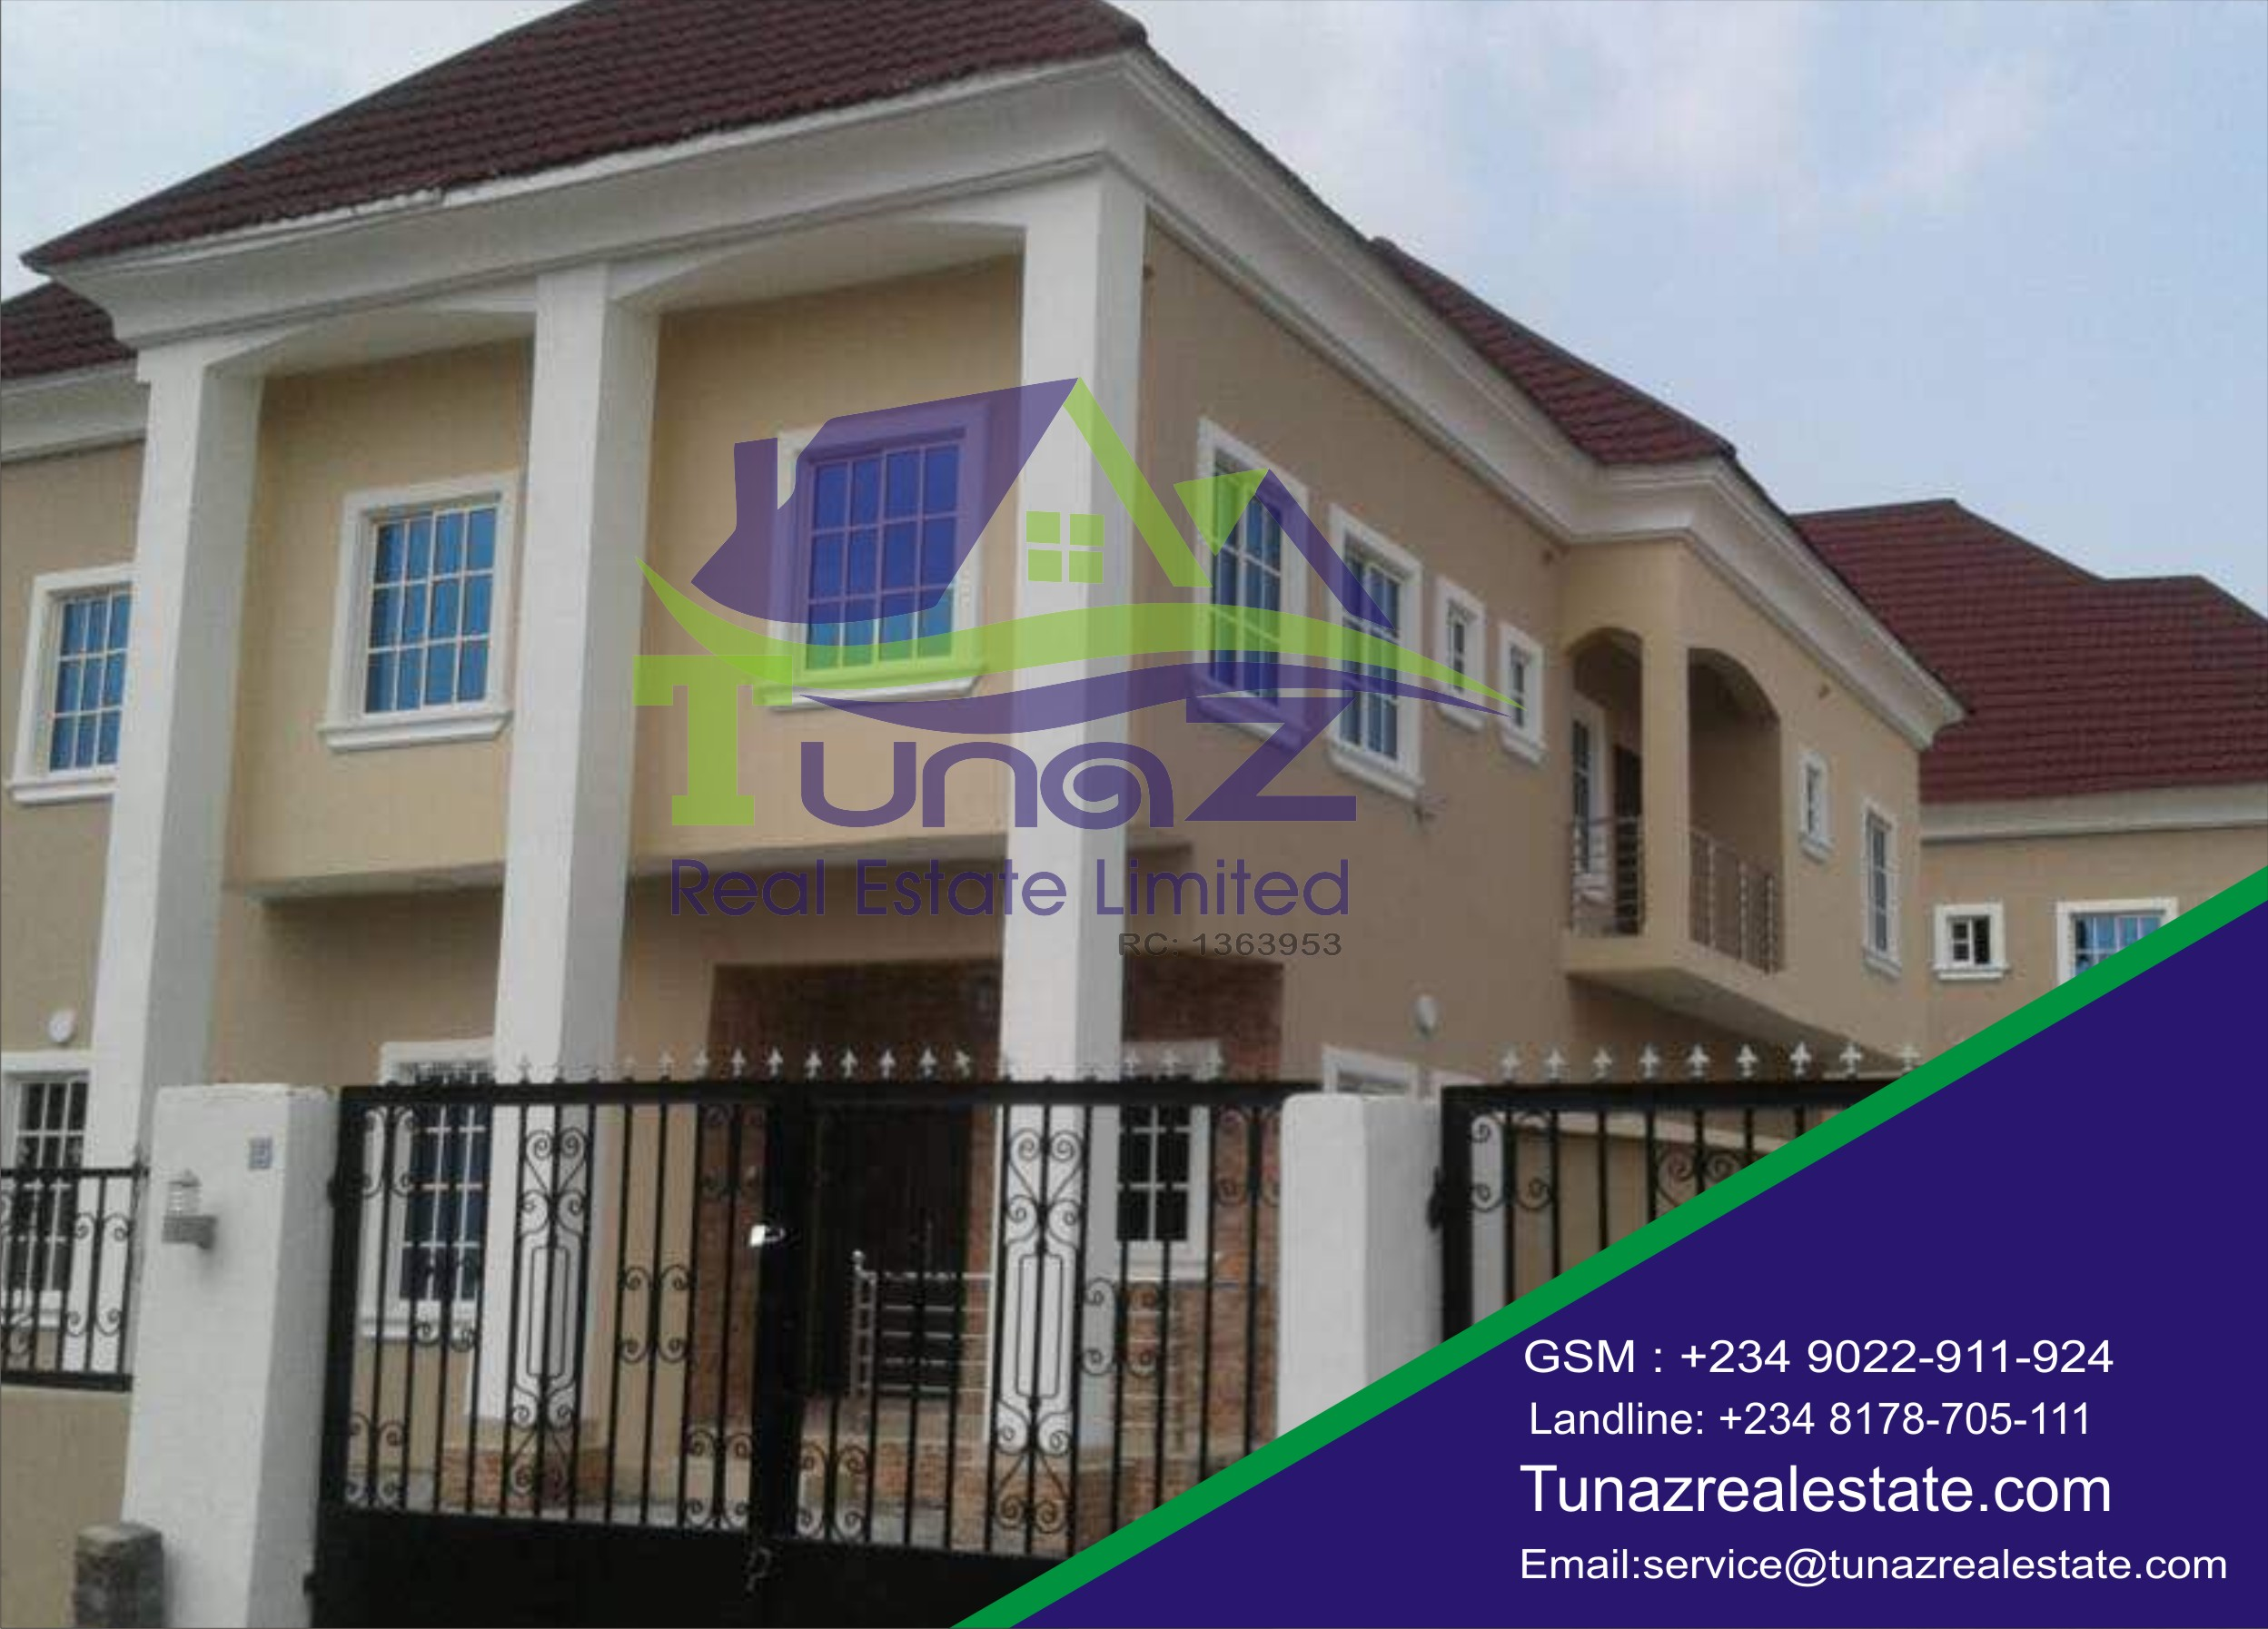 A 5 (2 Units) Bedroom Fully Detached Duplexes With A BQ And Tastefully Finished With Large Car Packs And Spaces For A Pool For Sale